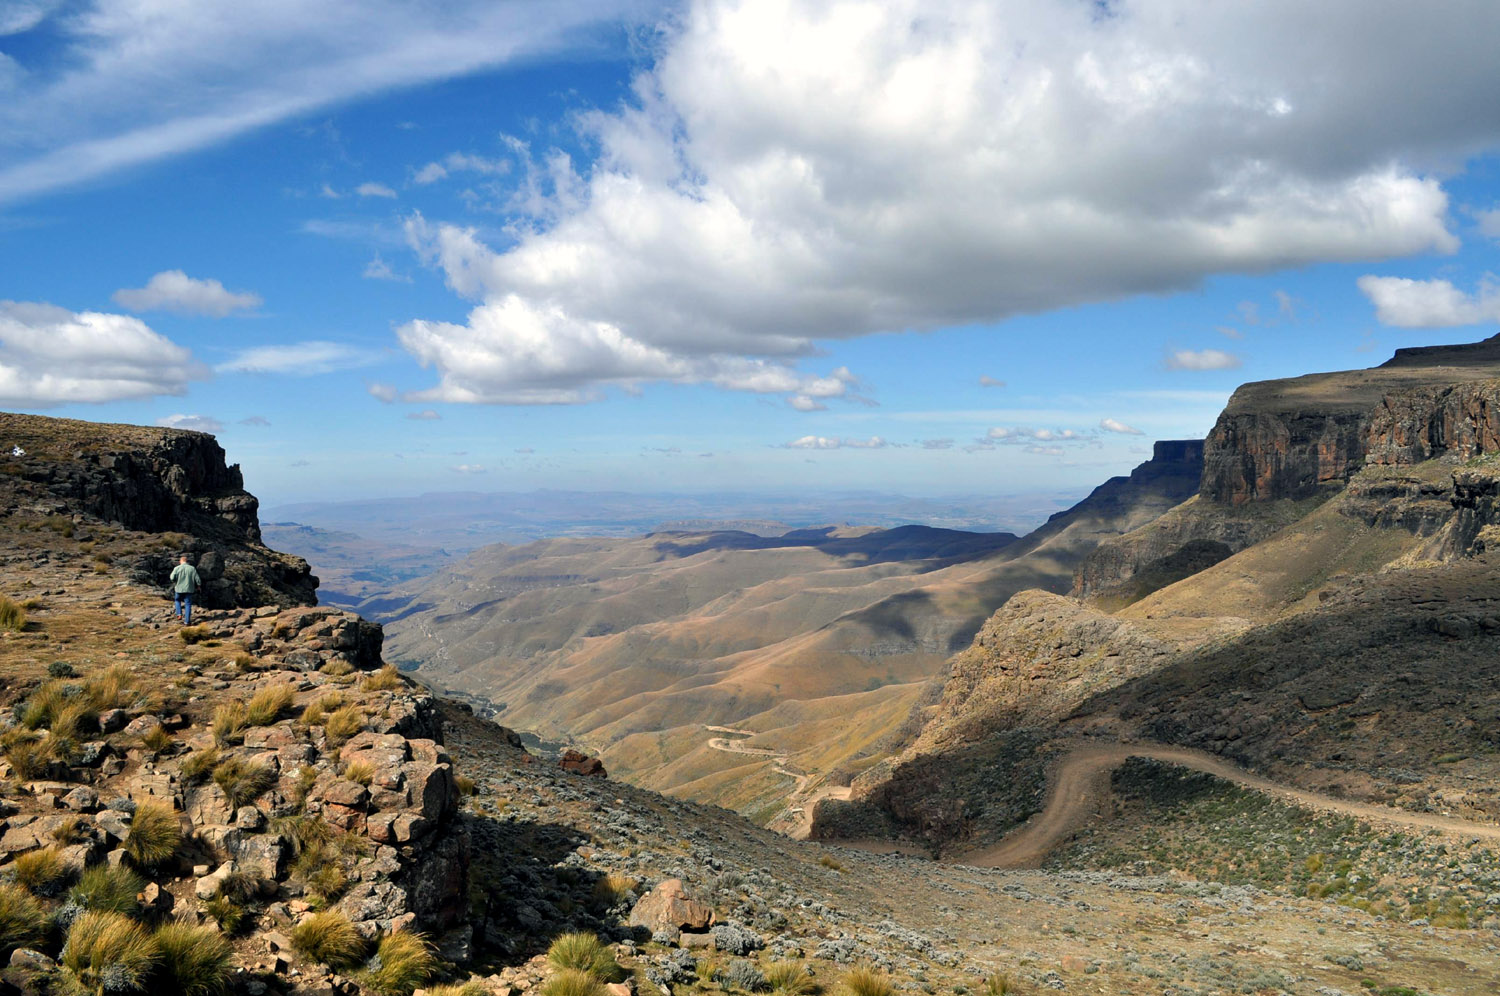 Beautiful view of the Sani Pass and Drakensberg Mountains from the top of the Sani Pass